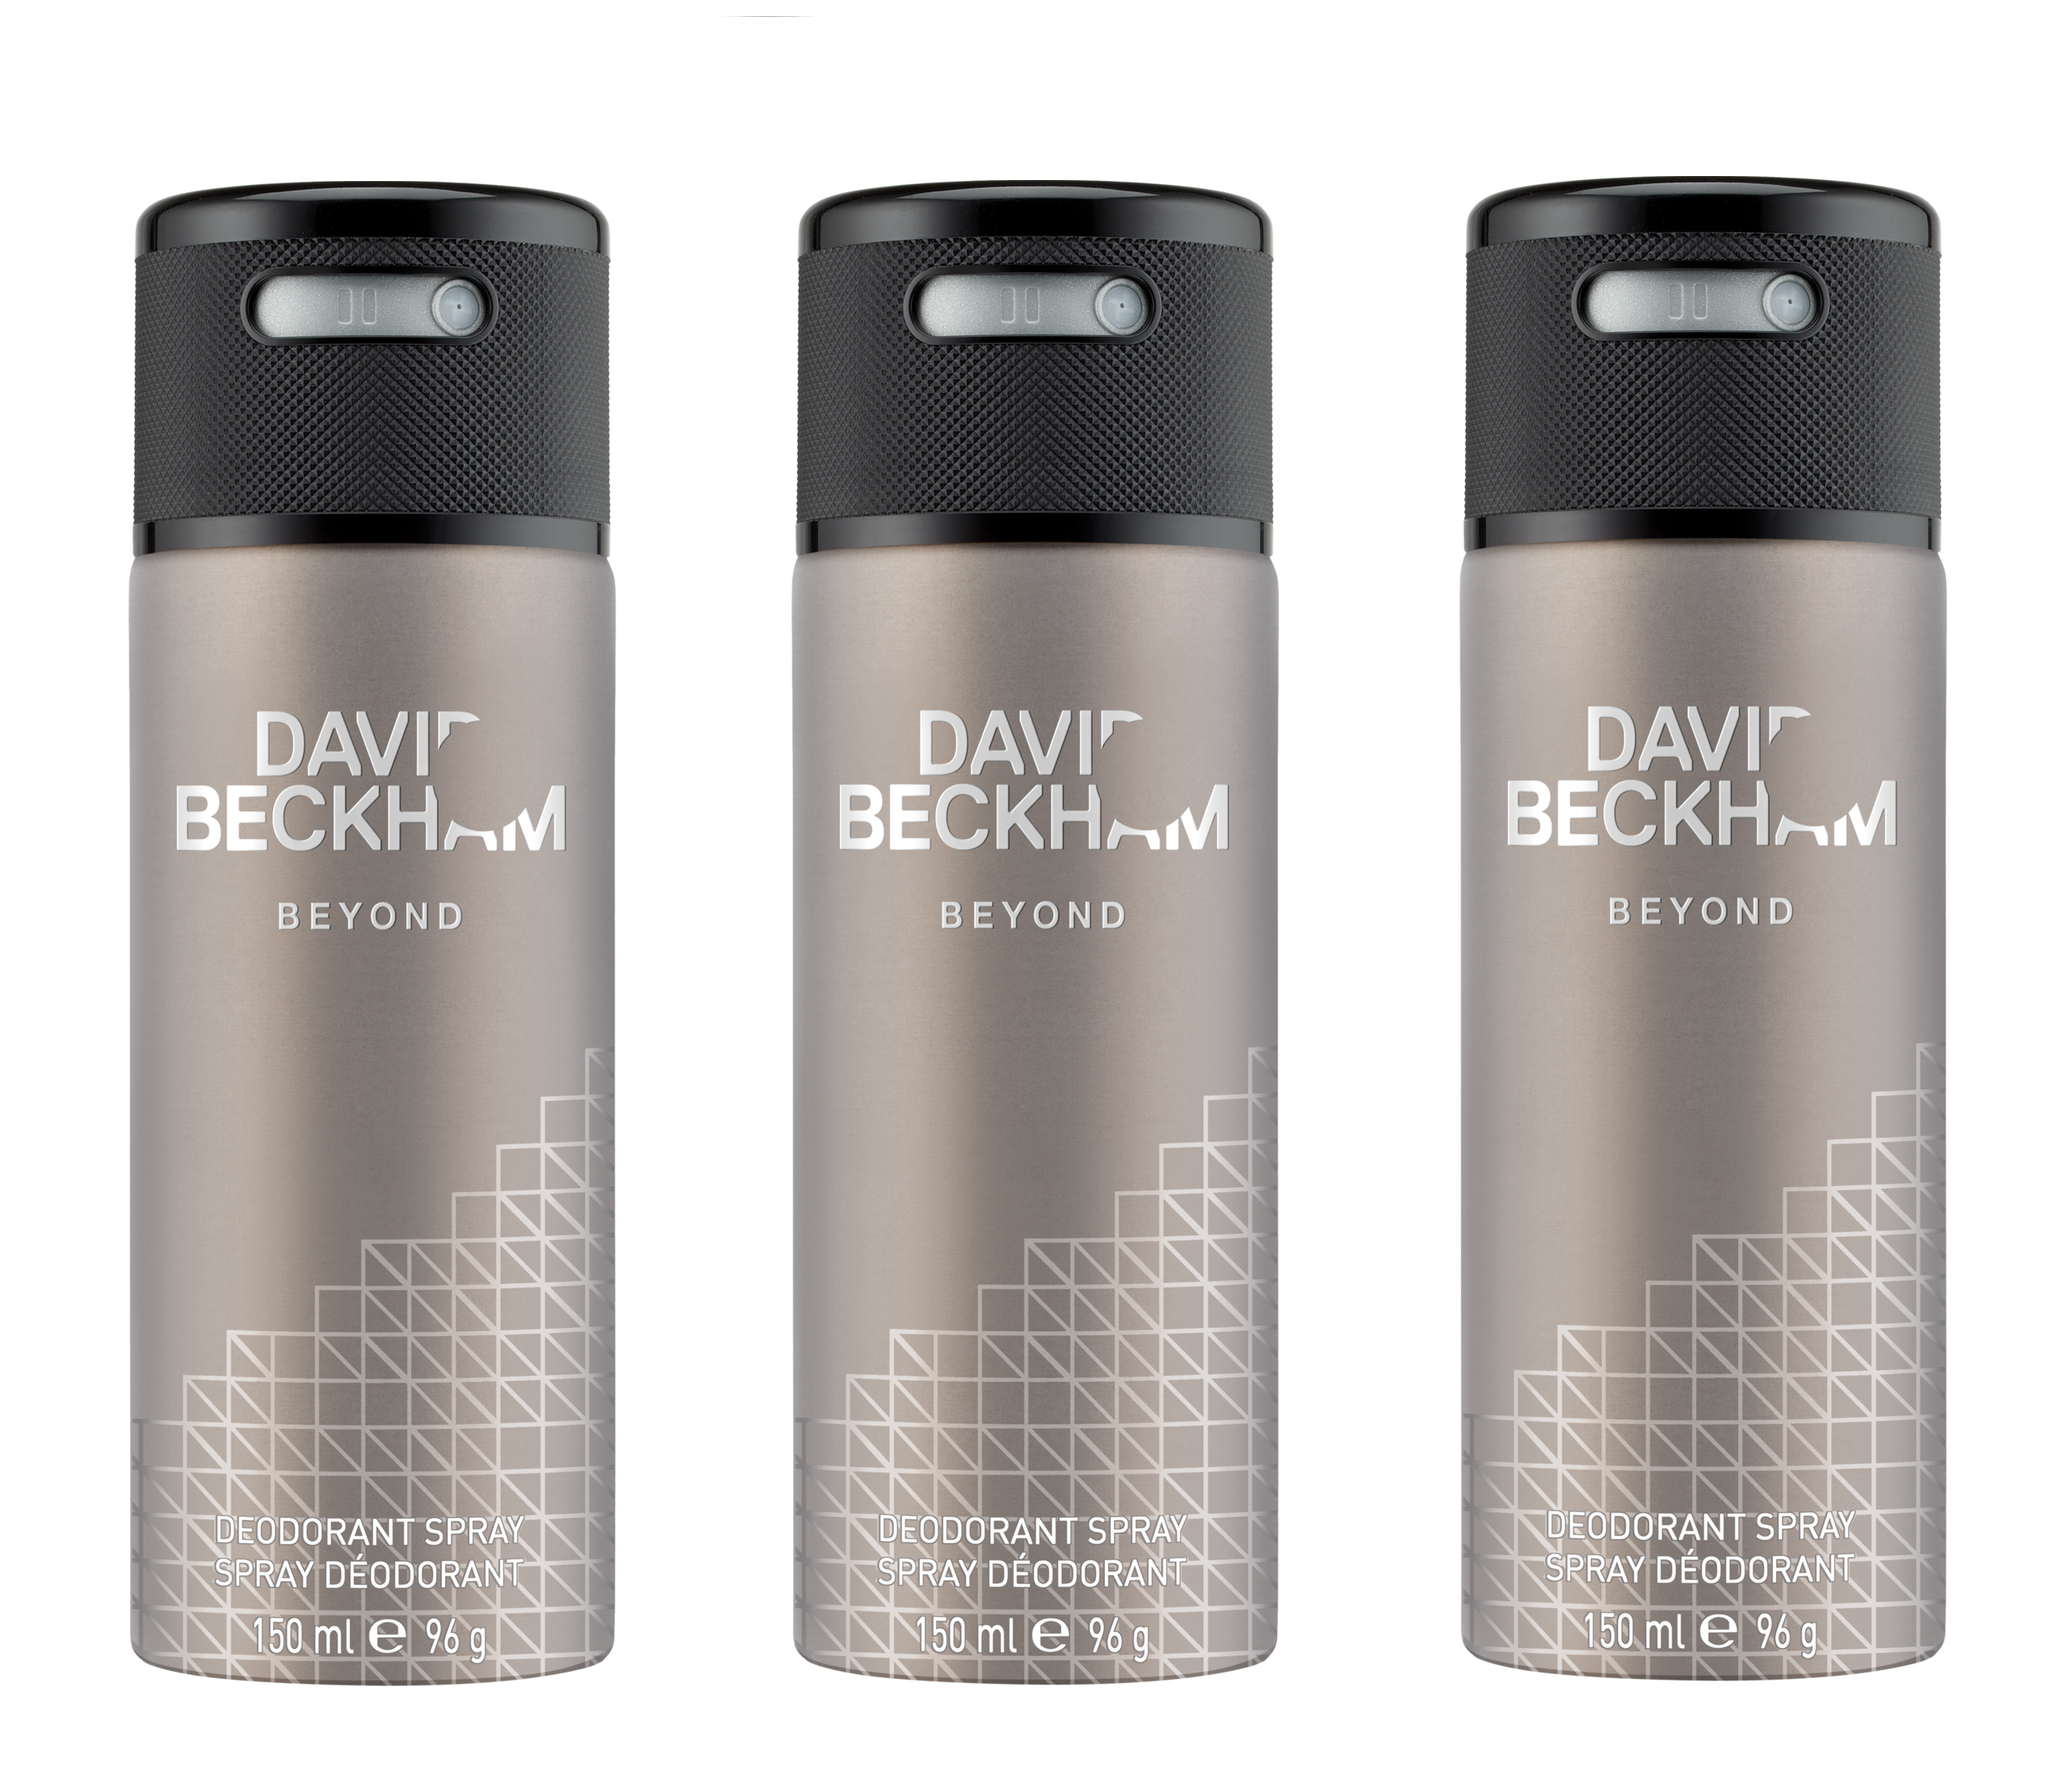 David Beckham - 3x Beyond Deodorant Spray 150 ml